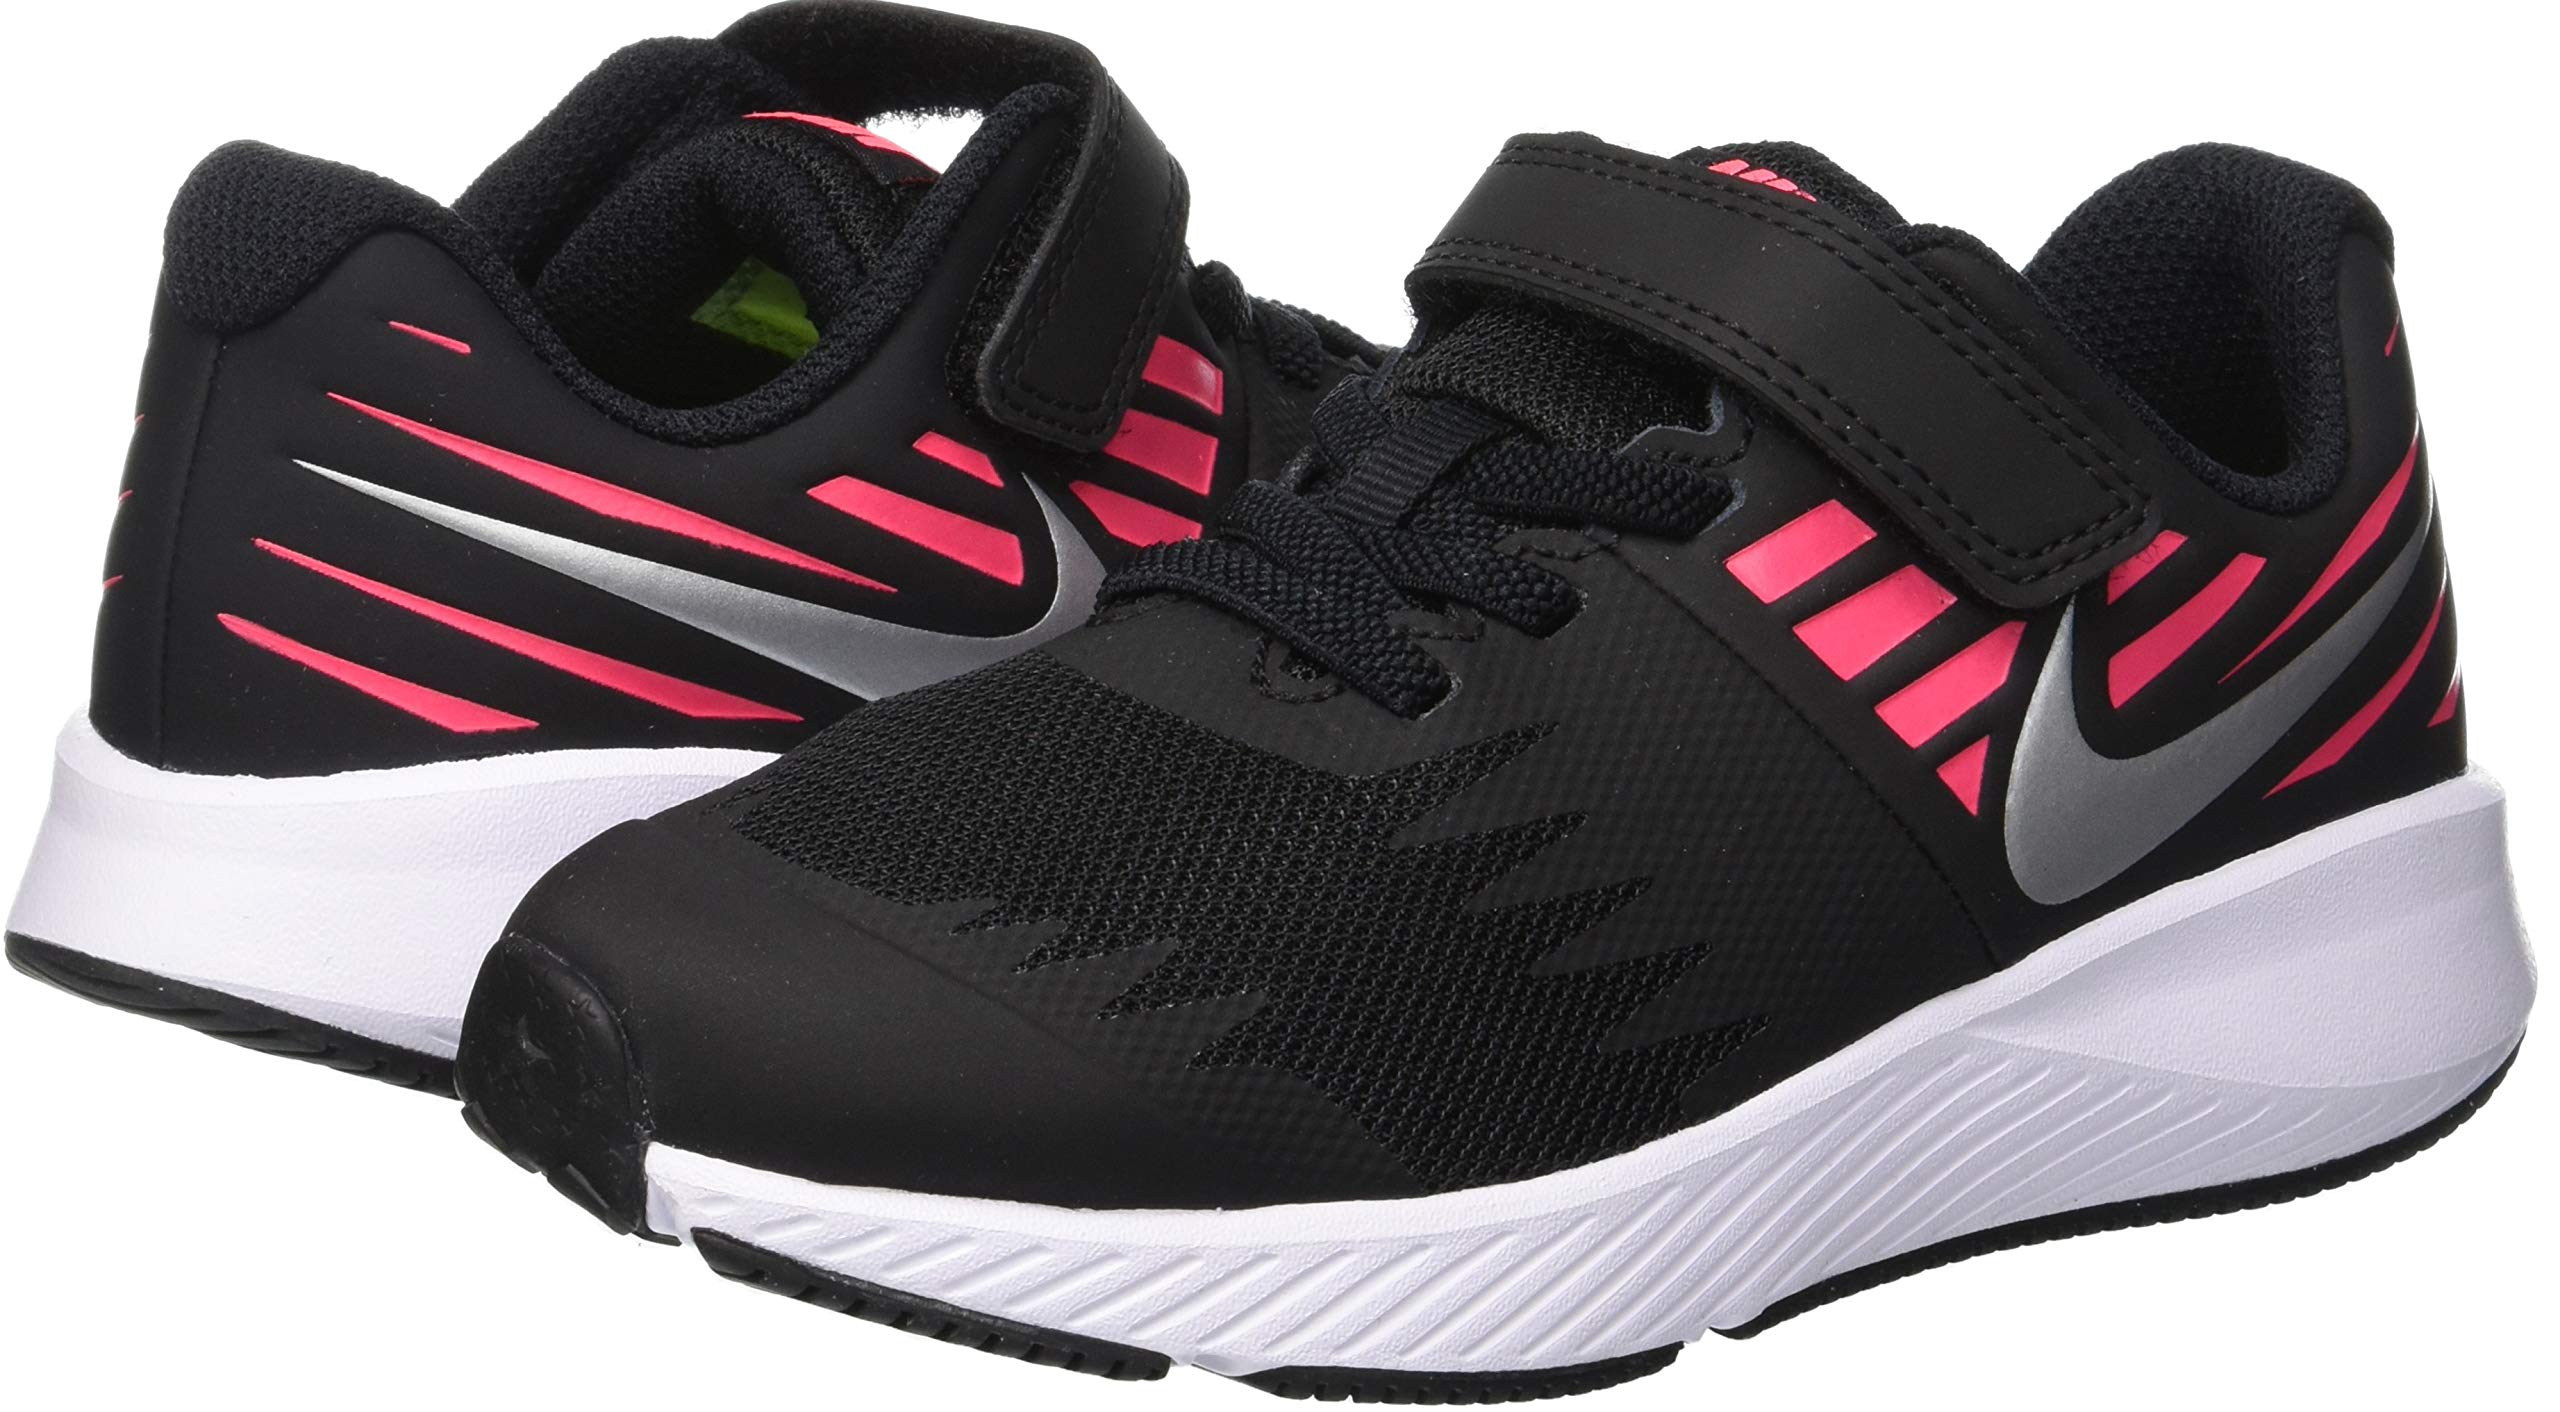 Nike Girl's Star Runner (PSV) Pre-School Shoe Black/Metallic Silver/Racer Pink/Volt Size 1.5 M US by Nike (Image #5)